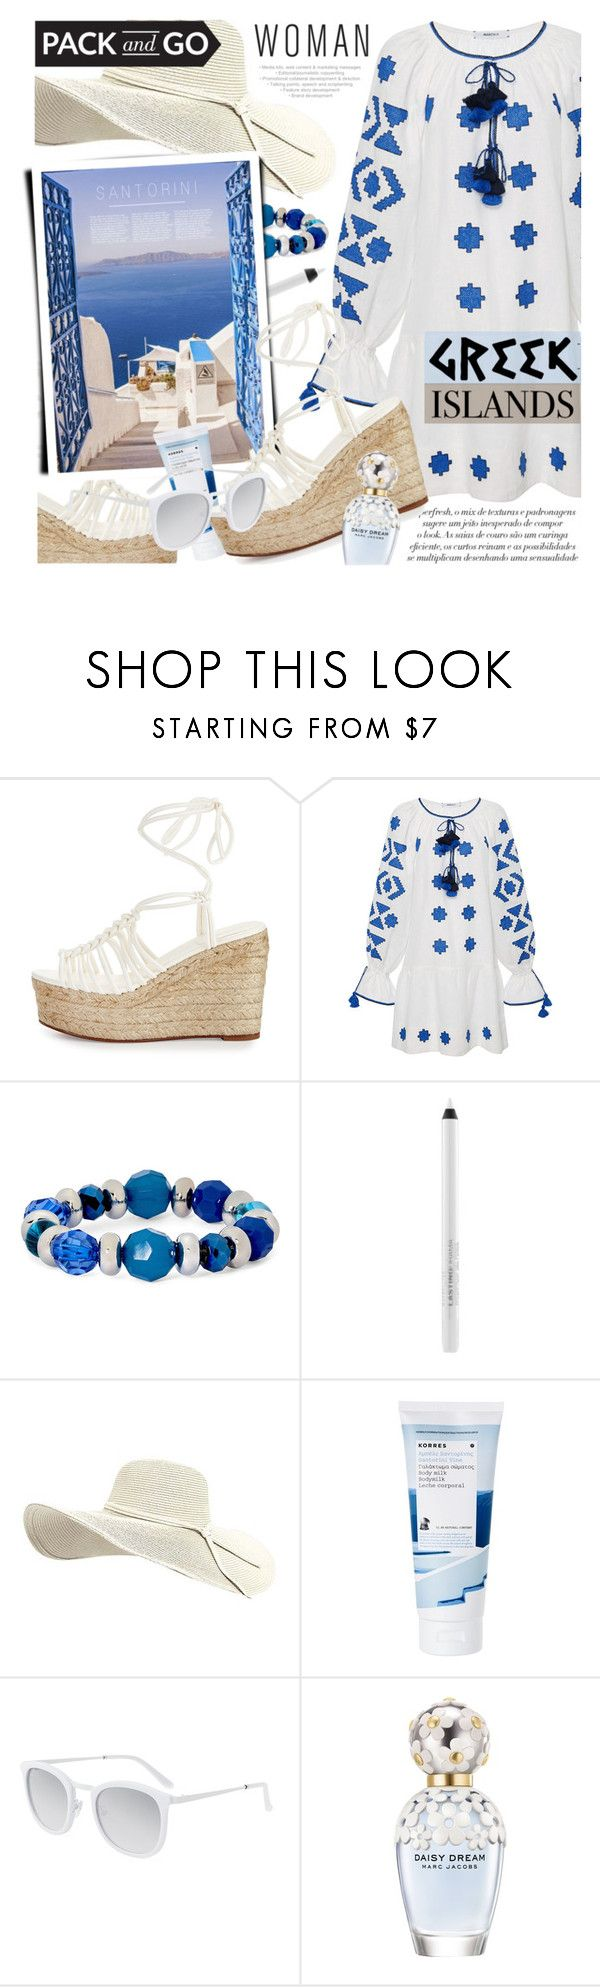 """""""Pack and Go: Greek Island"""" by noviii ❤ liked on Polyvore featuring Chloé, March11, Mixit, Korres, Smoke x Mirrors, Marc Jacobs, Packandgo and greekislands"""